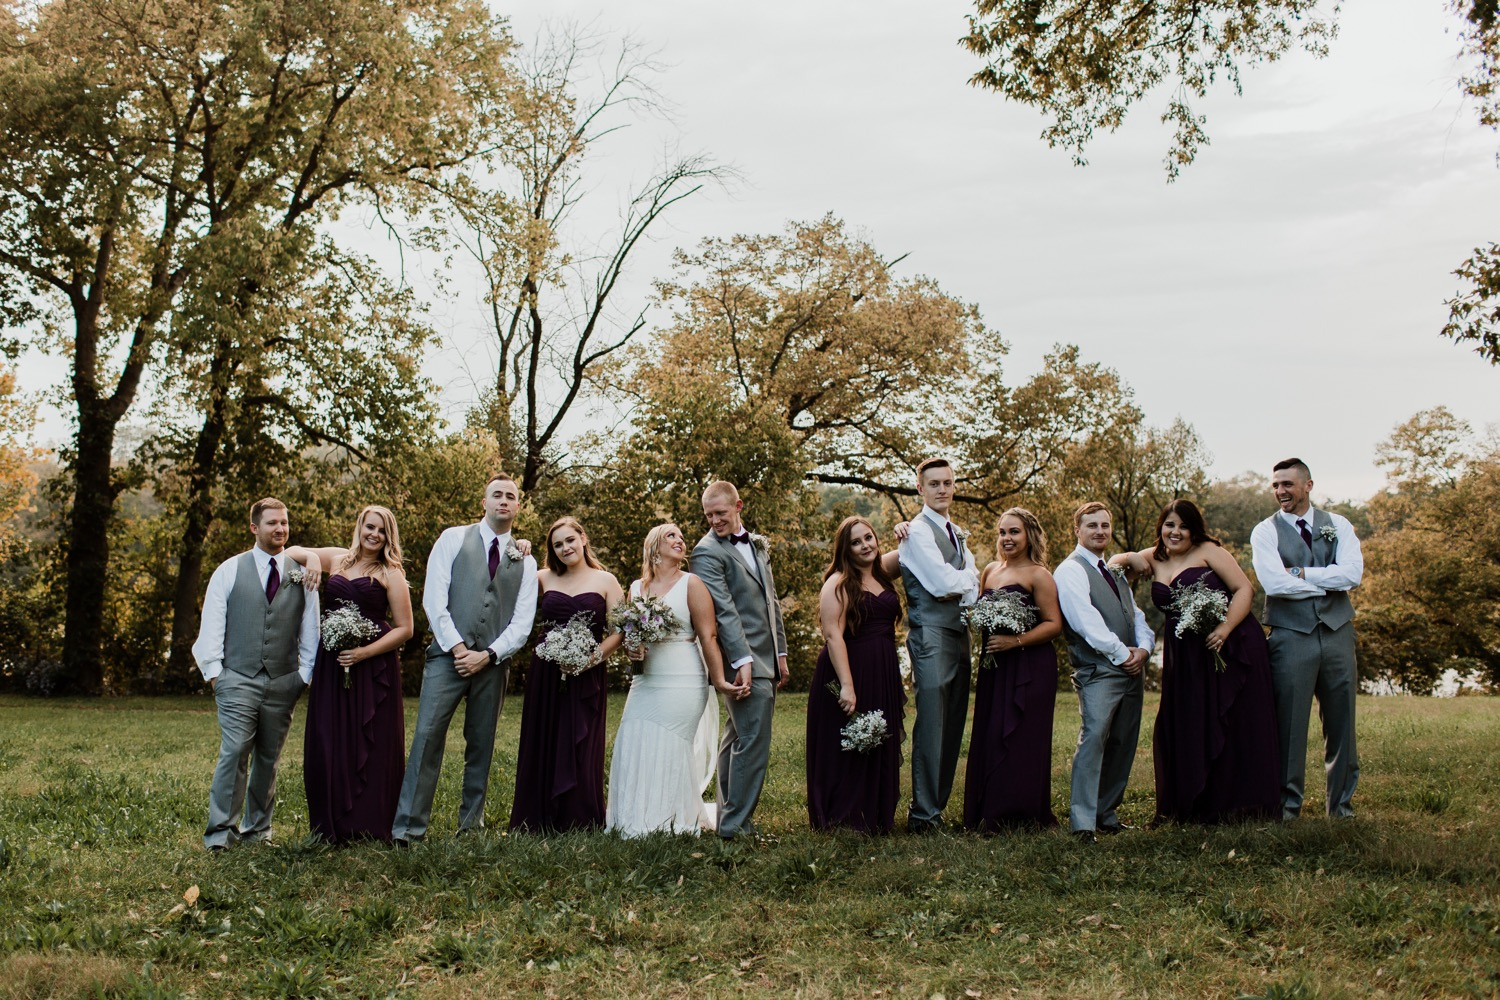 11_Photographer_Groom_Bridesmaids_ColumbusWeddingPhotographer_Bride_ColumbusWedding_Photography_FloridaWeddingPhotographer_Vue_Strongwater_Groomsmen_Wedding_Ohio_Jorgensen_Columbus.jpg